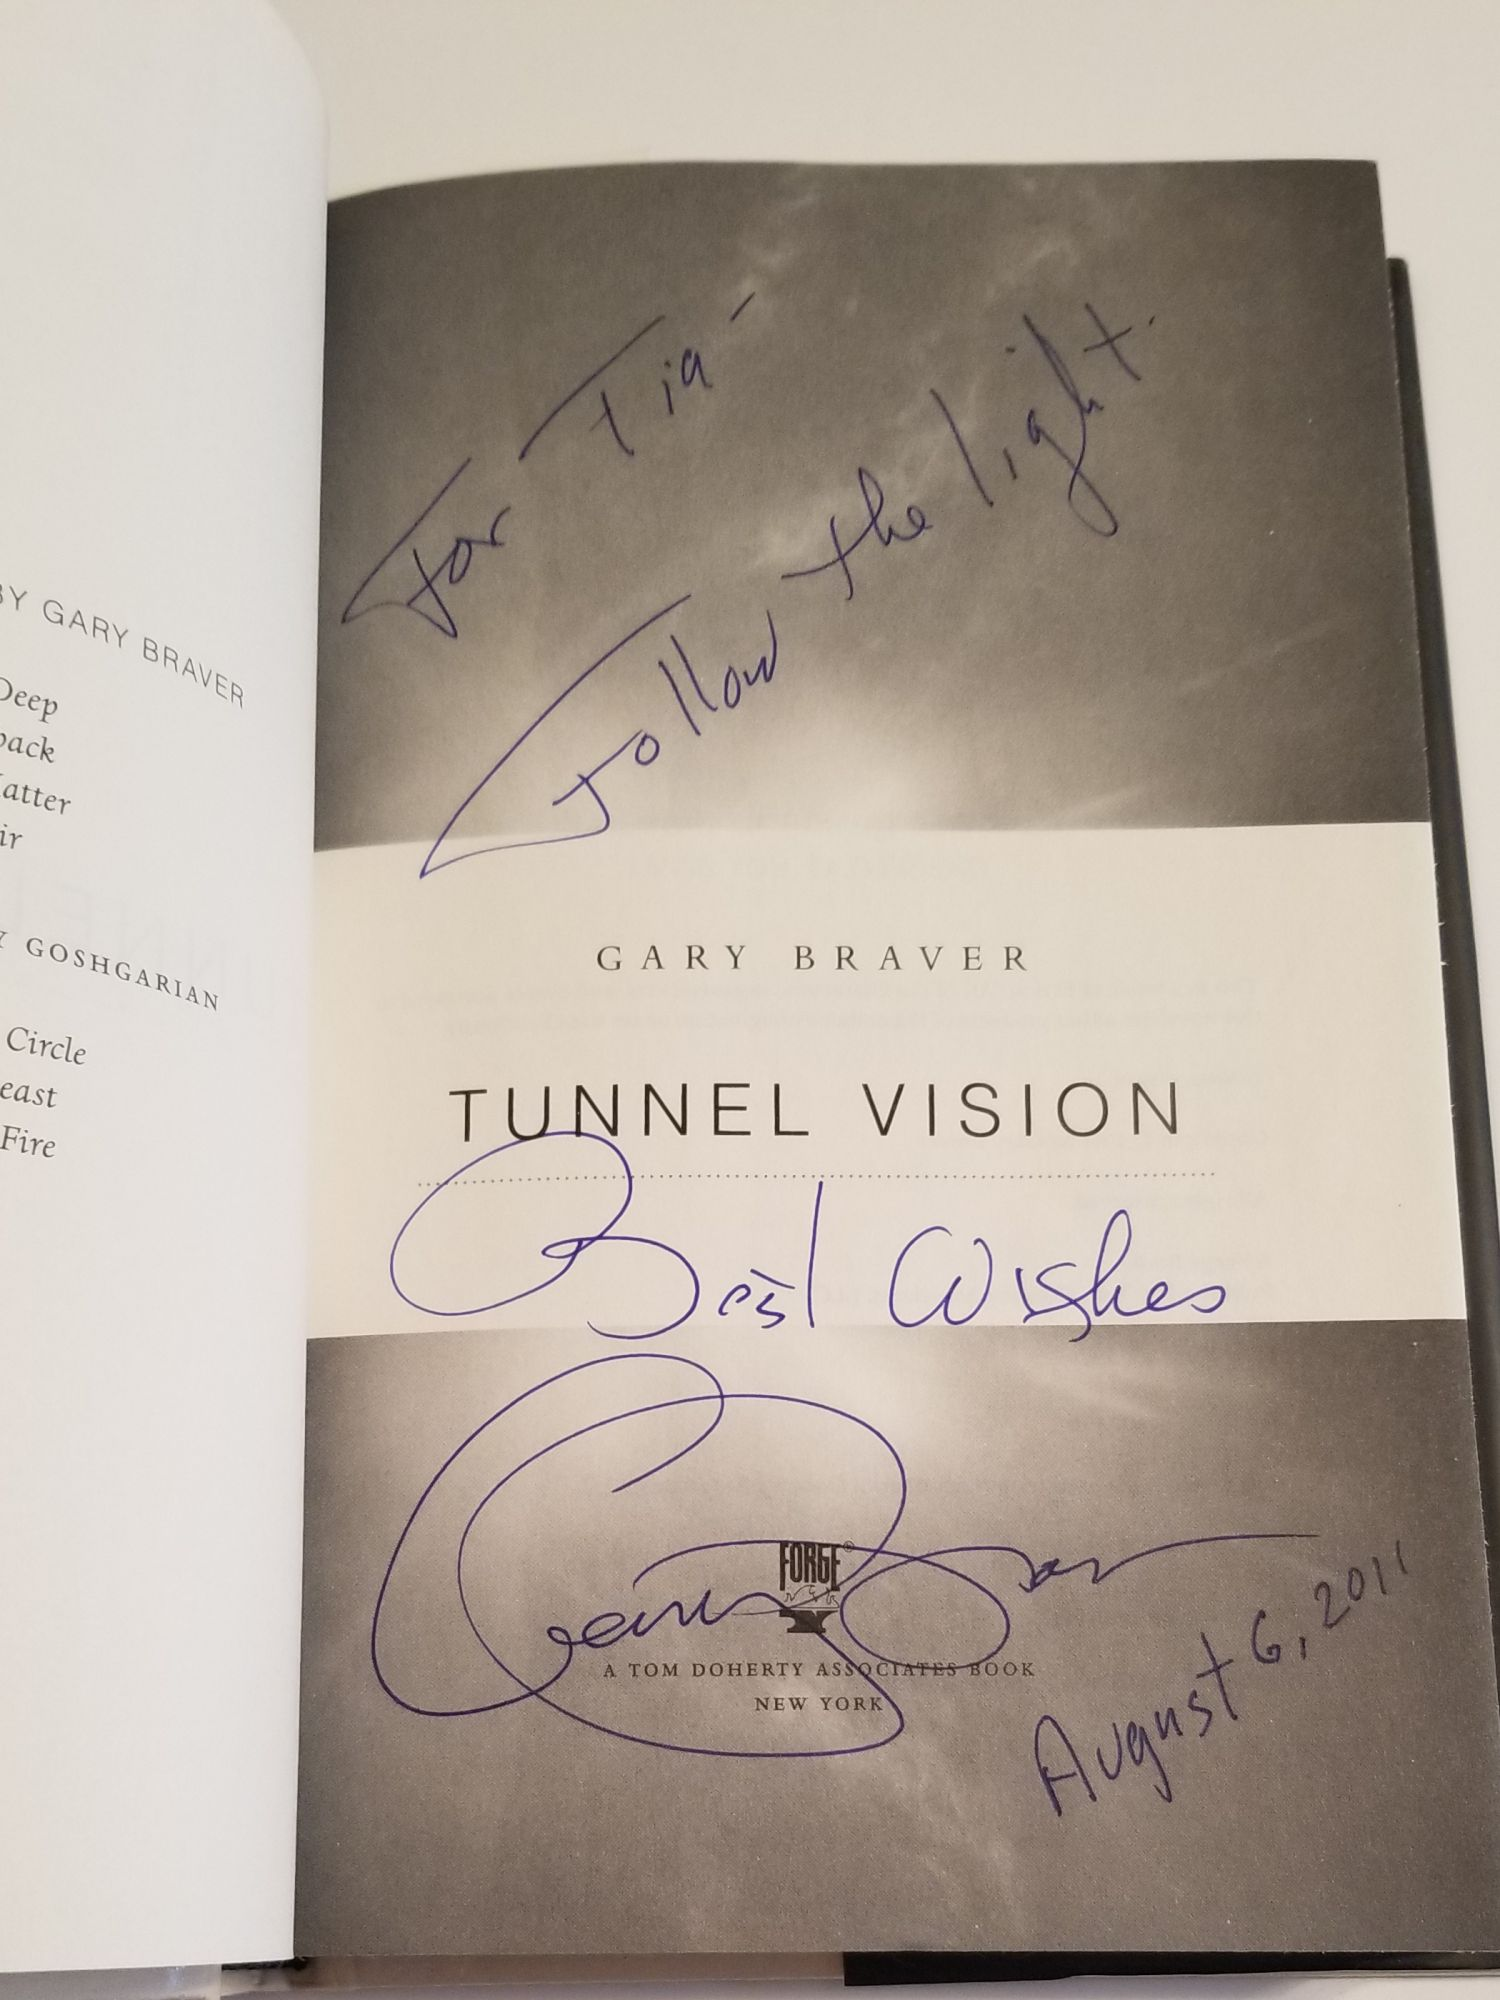 medium resolution of image 2 of 2 for tunnel vision